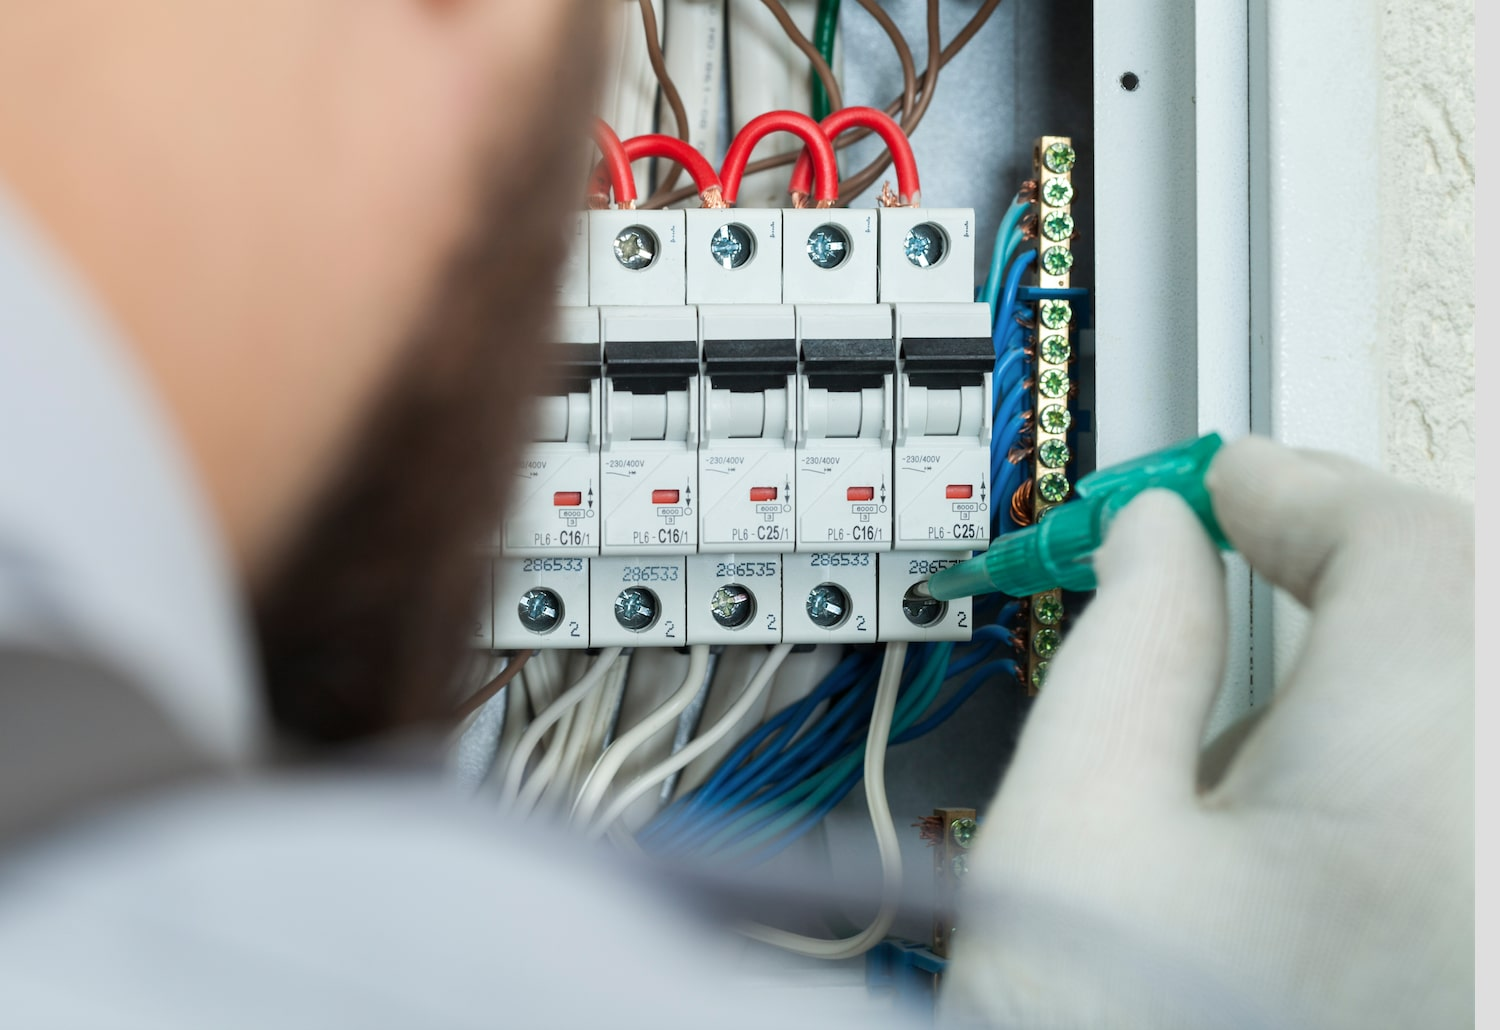 Electrical Contractors in Phoenix, Tempe, Mesa, AZ, www.yourphoenixhandyman.com